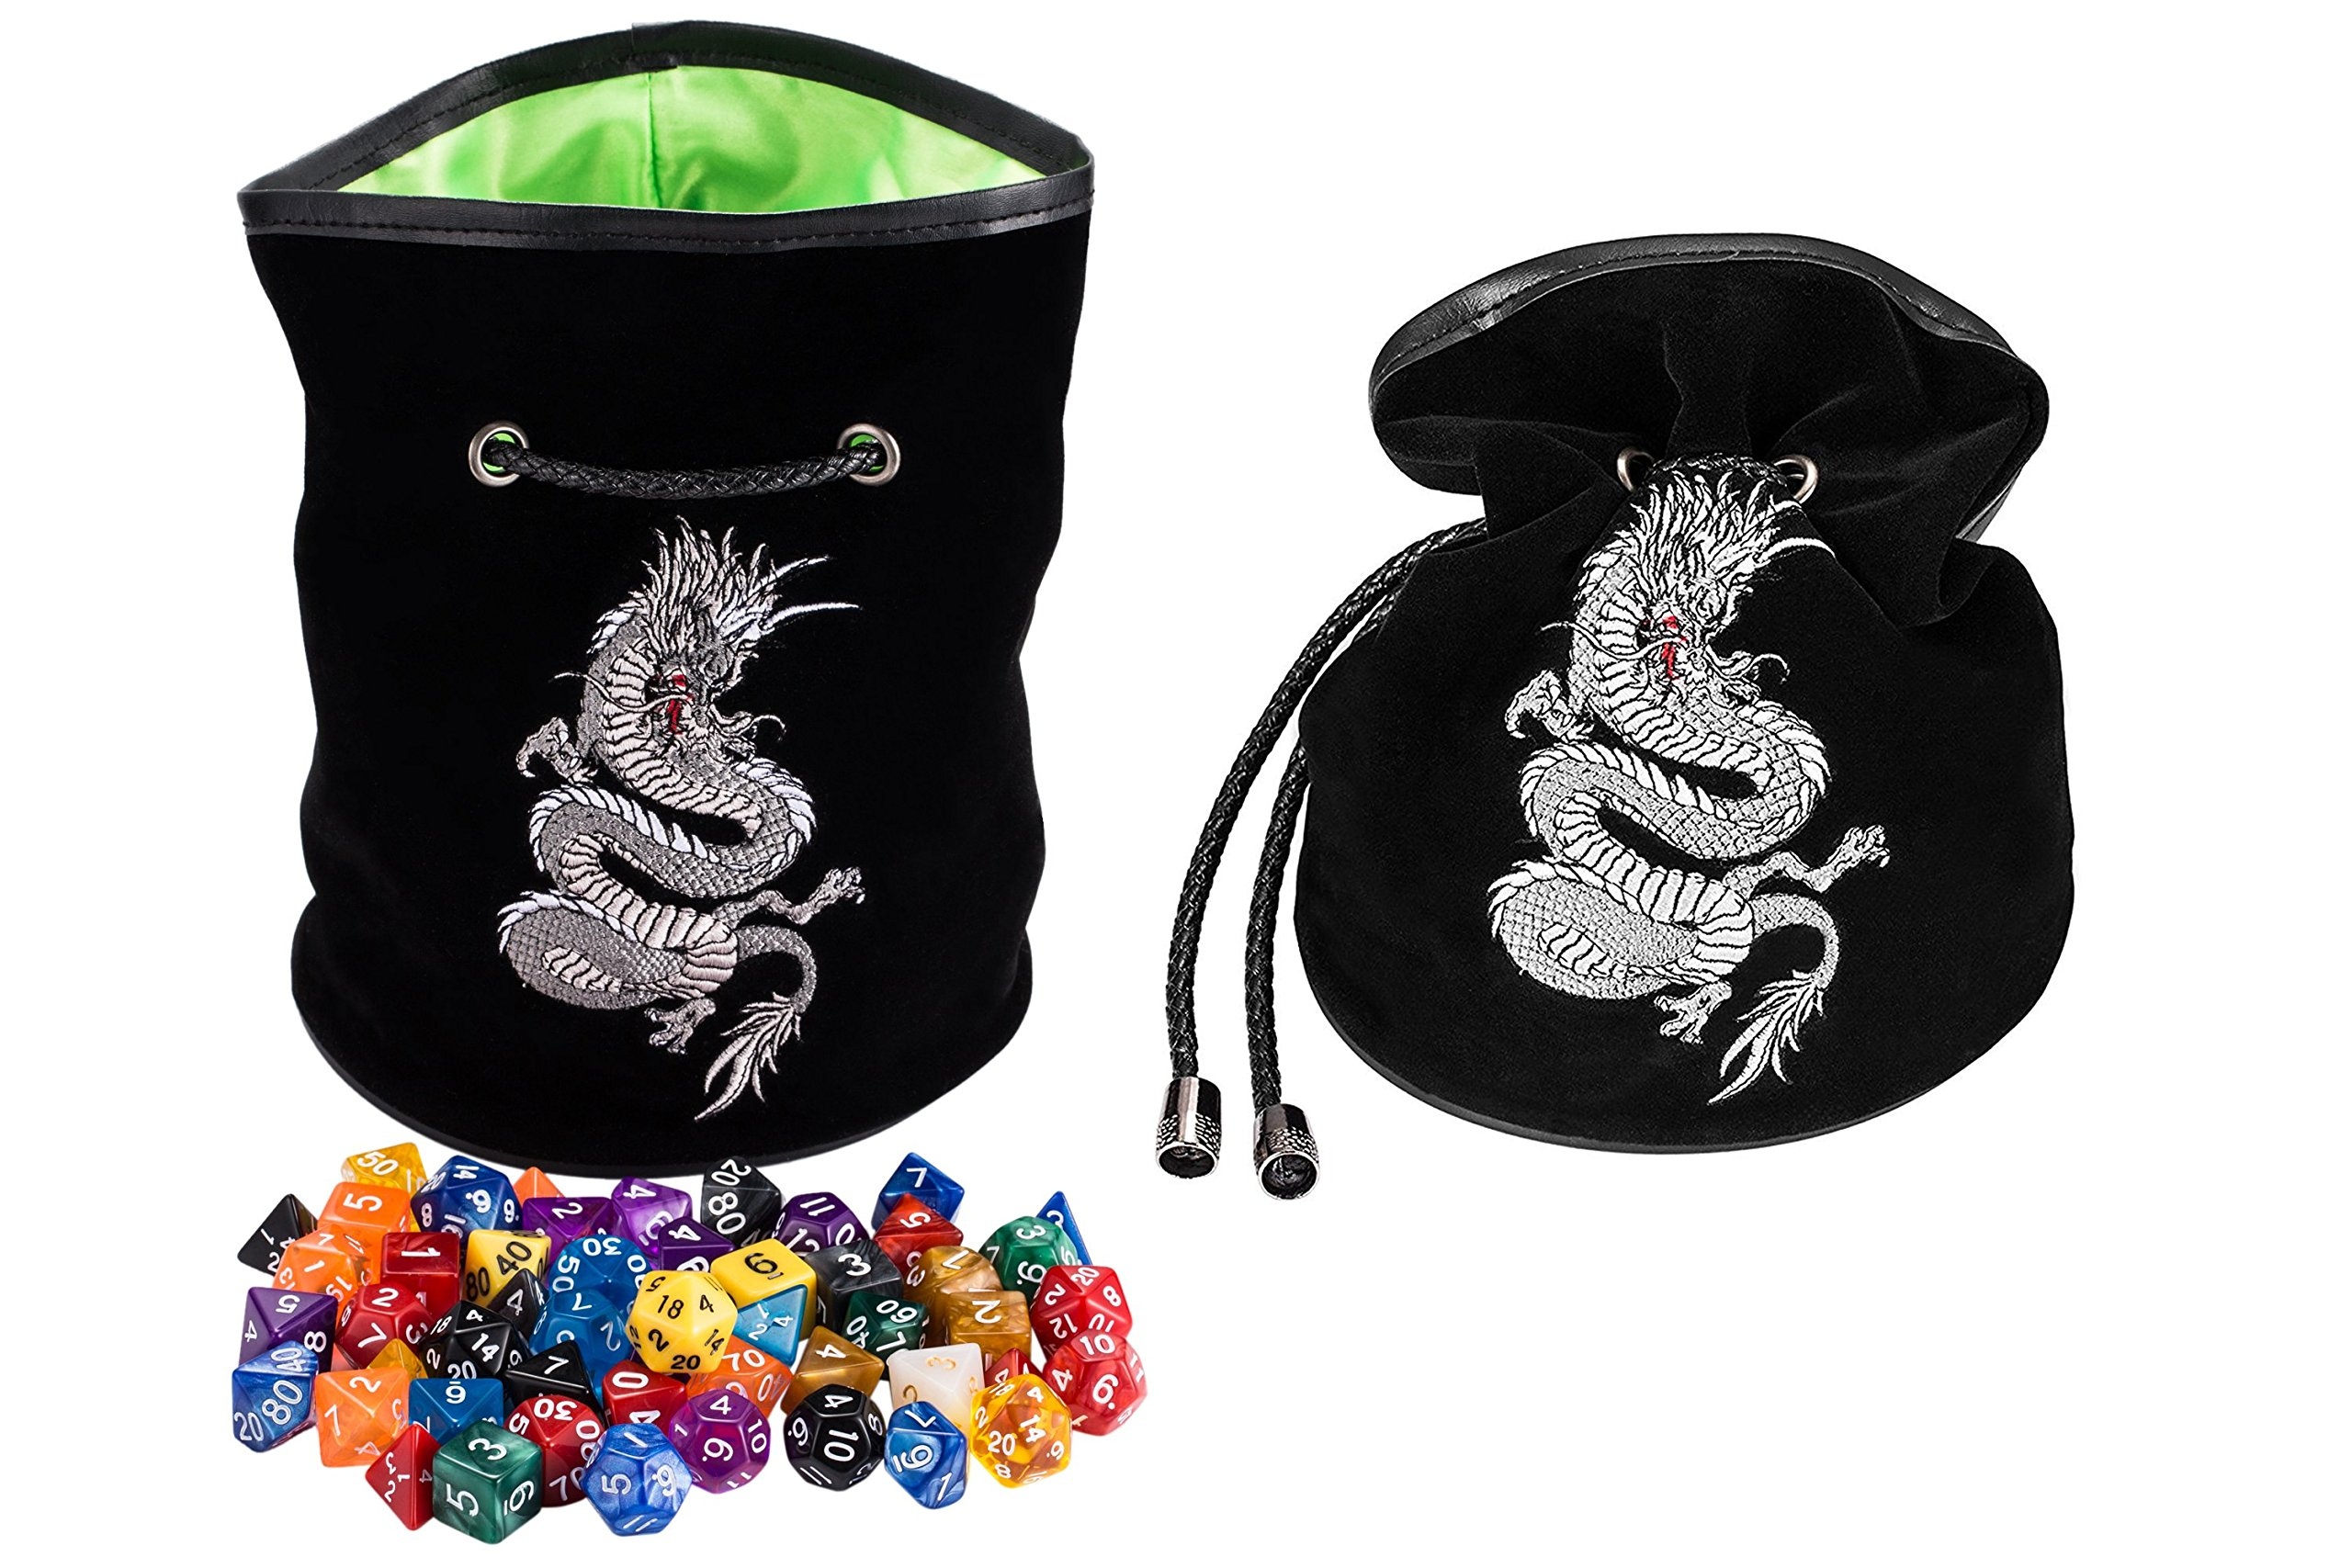 Rogues & Knaves large dice bag embroidered with Platinum Dragon. Ideal for D&D, MTG, RPG. Ideal DND gift. 6 internal pockets for extra dice sets. Stays open during gameplay, cinches tight for travel.